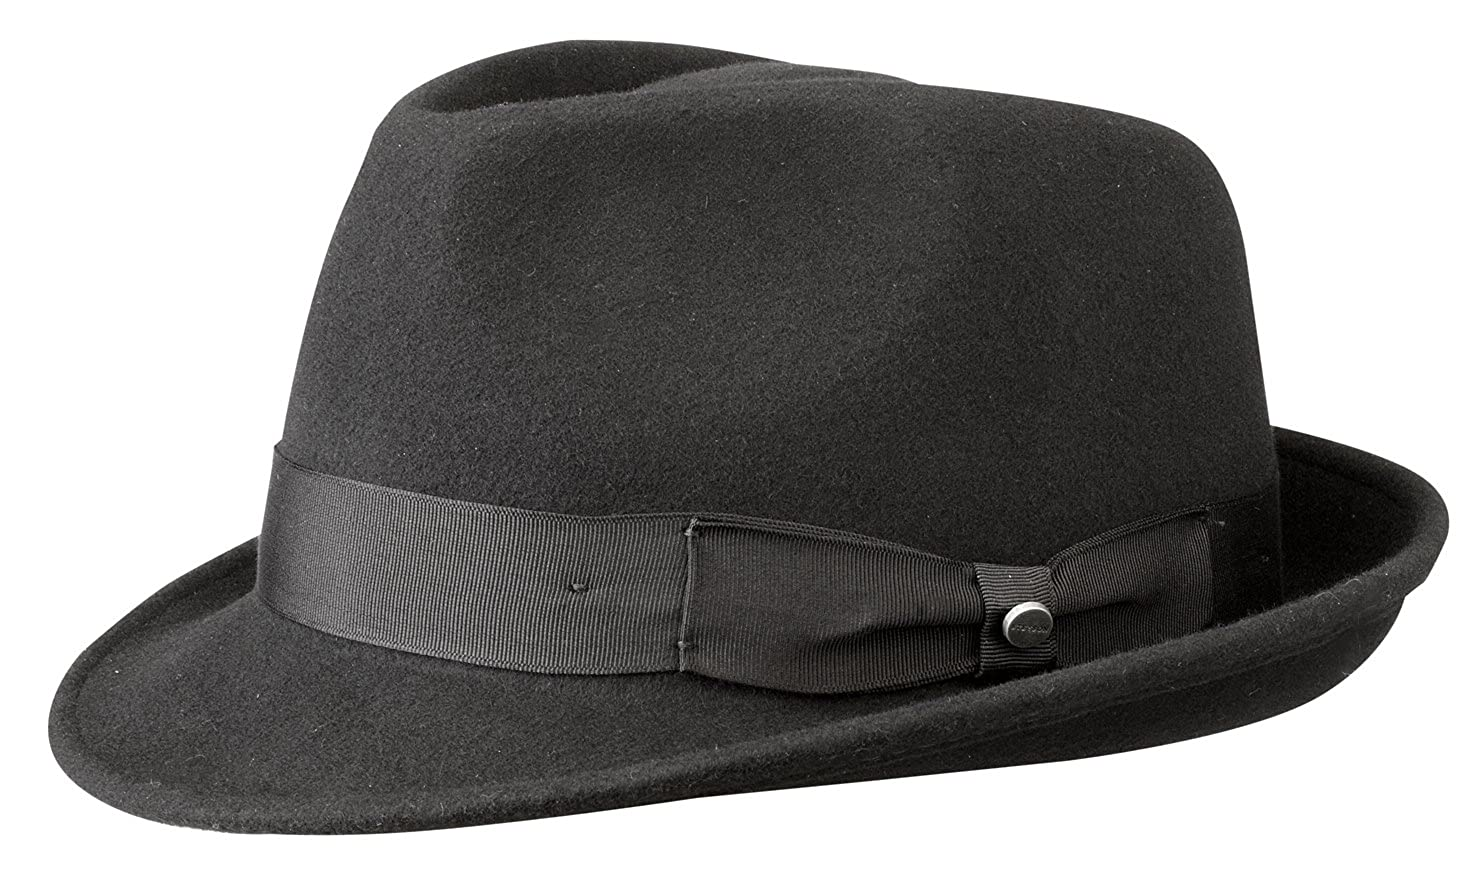 33b50f02 Stetson Hats Elkader Wool Trilby Hat (Large, Brown): Amazon.co.uk: Clothing